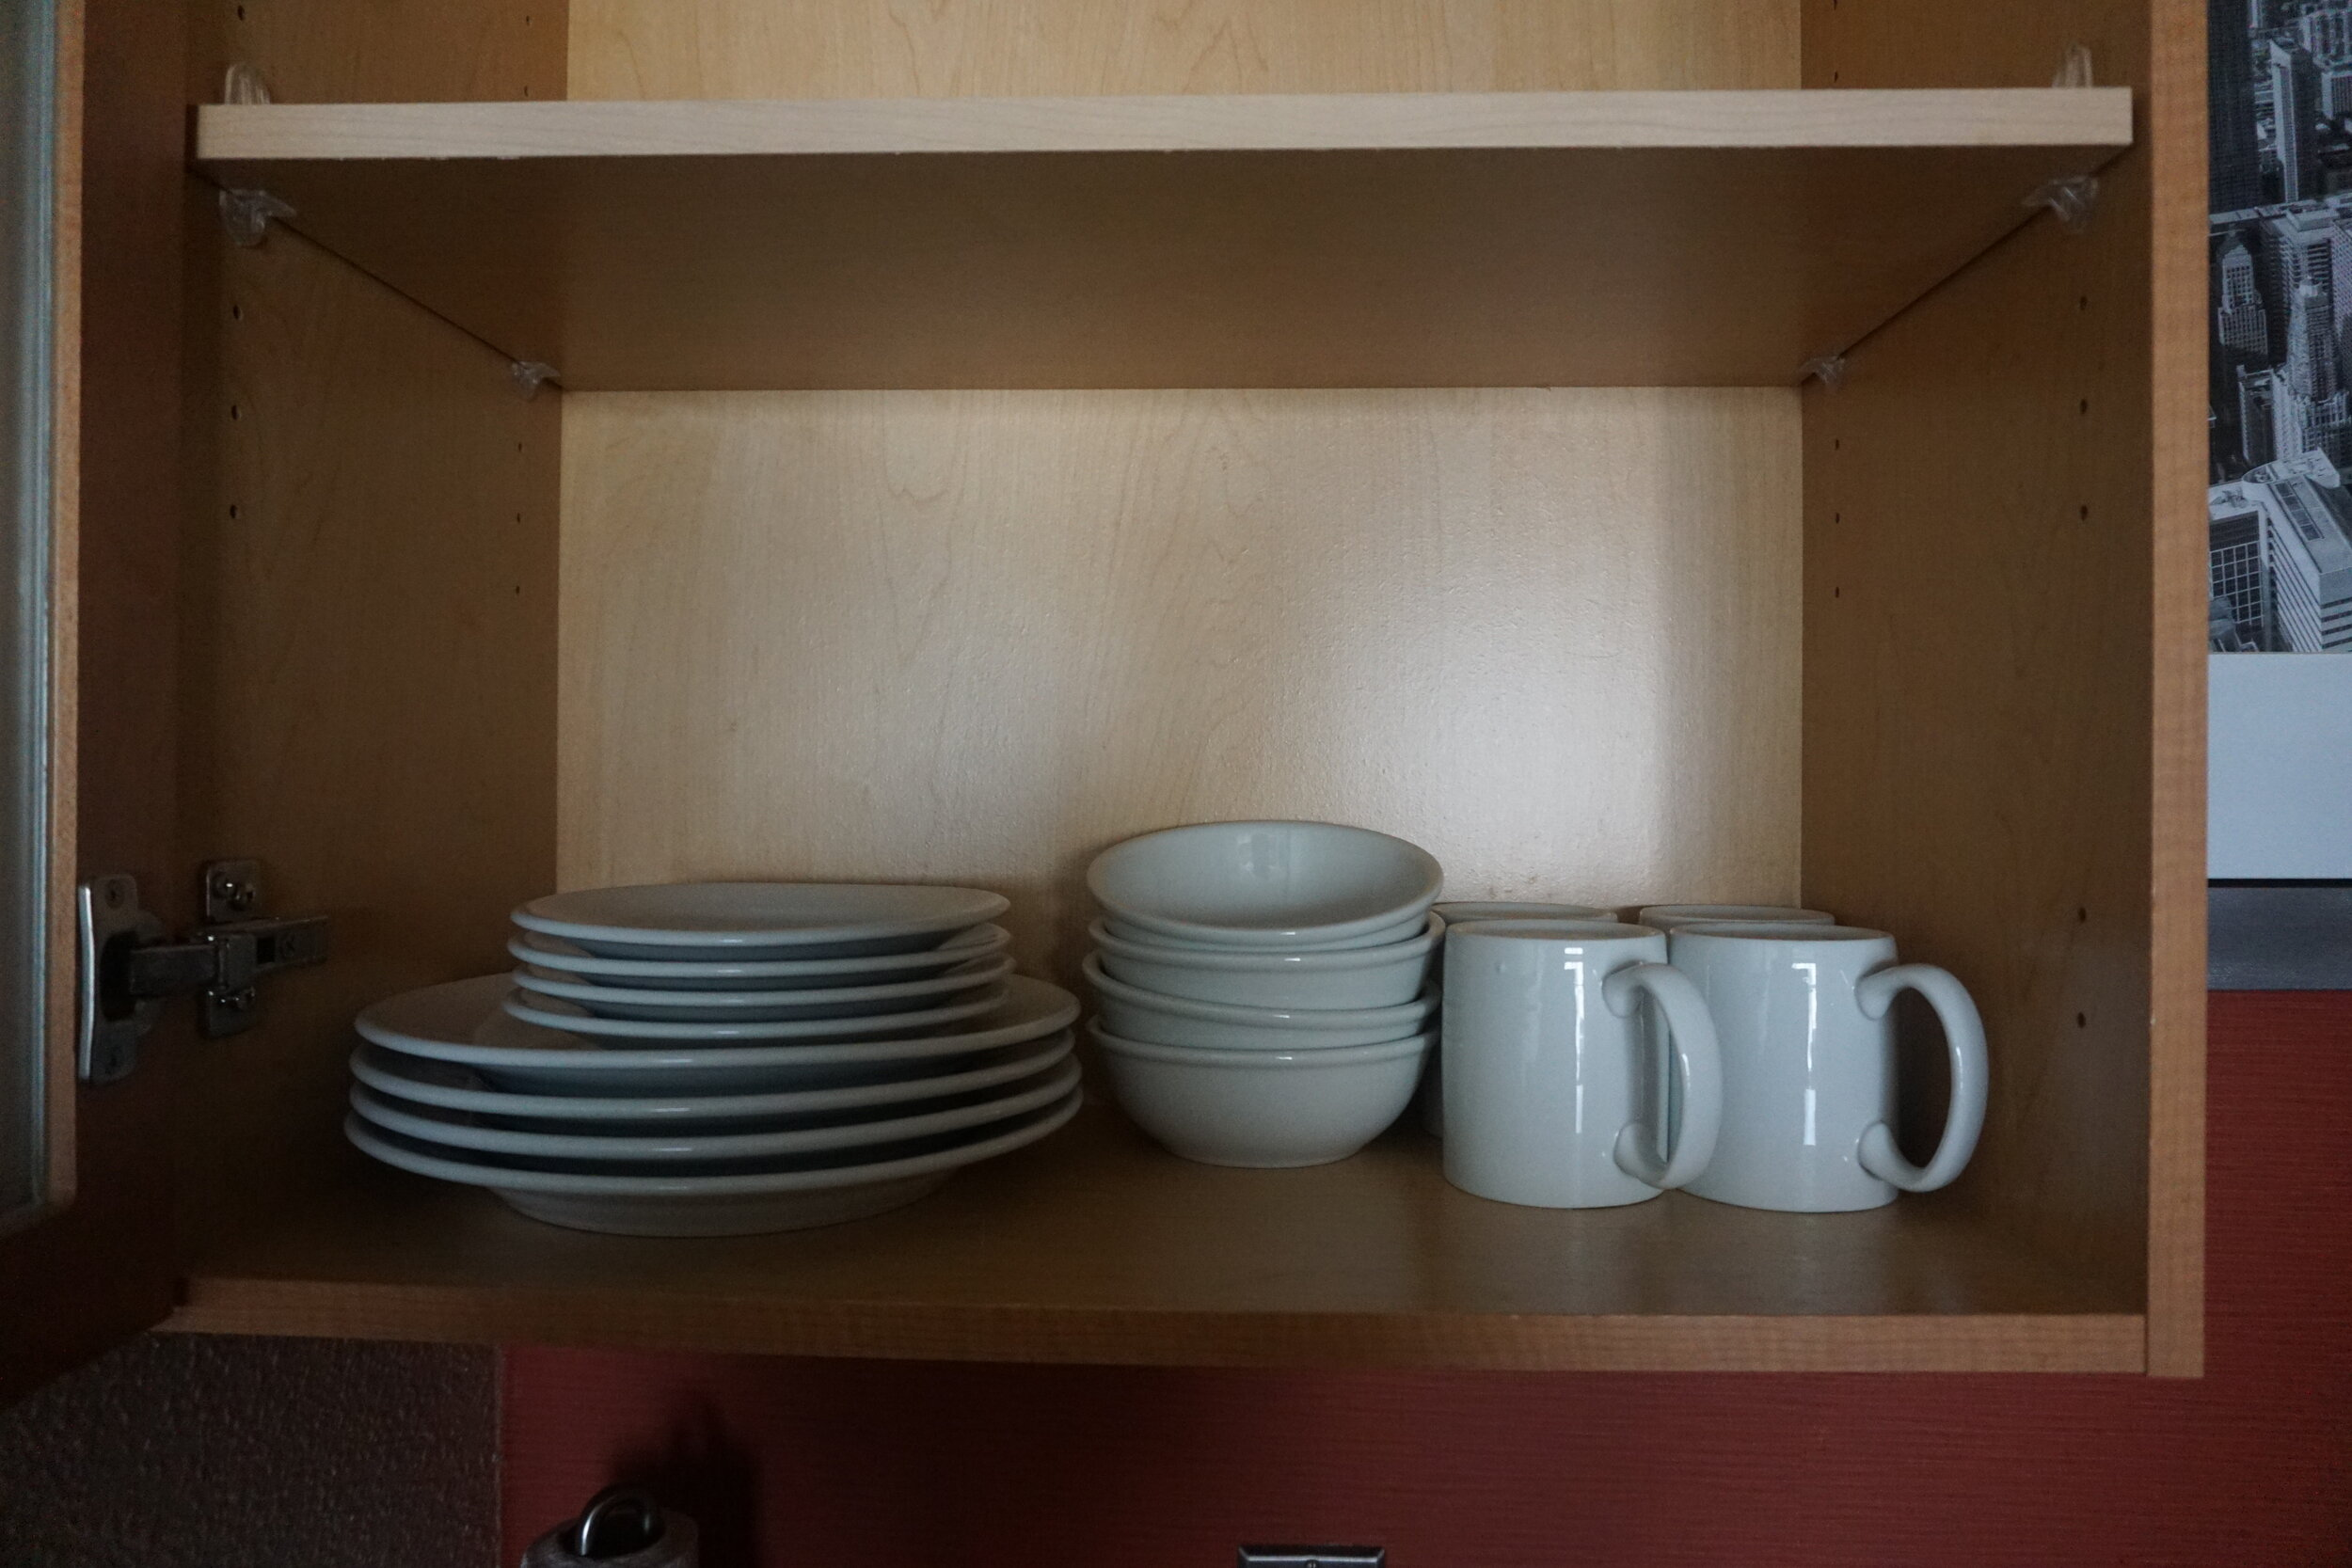 Plates (and cutlery- not in the picture) available for use